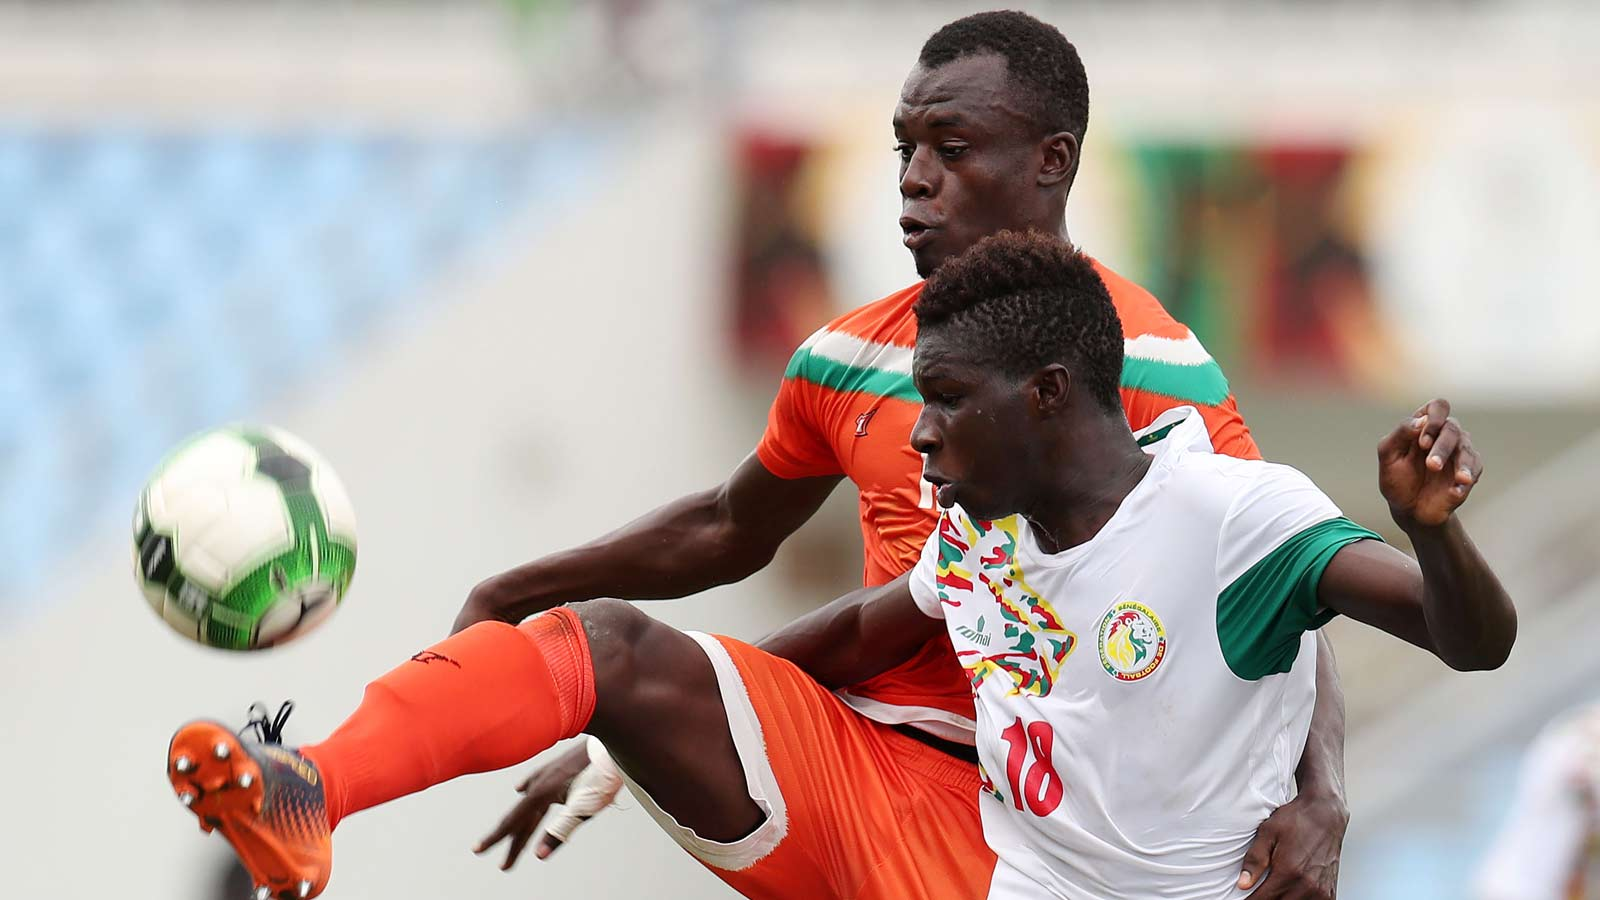 Amadou Dia Ndiaye of Senegal shields ball from Abdoulaye Katkore Boureima of Niger during 2017 WAFU Cup of Nations match between Senegal and Niger at Cape Coast Sports Stadium in Cape Coast, Ghana on 15 September 2017 ©Muzi Ntombela/BackpagePix